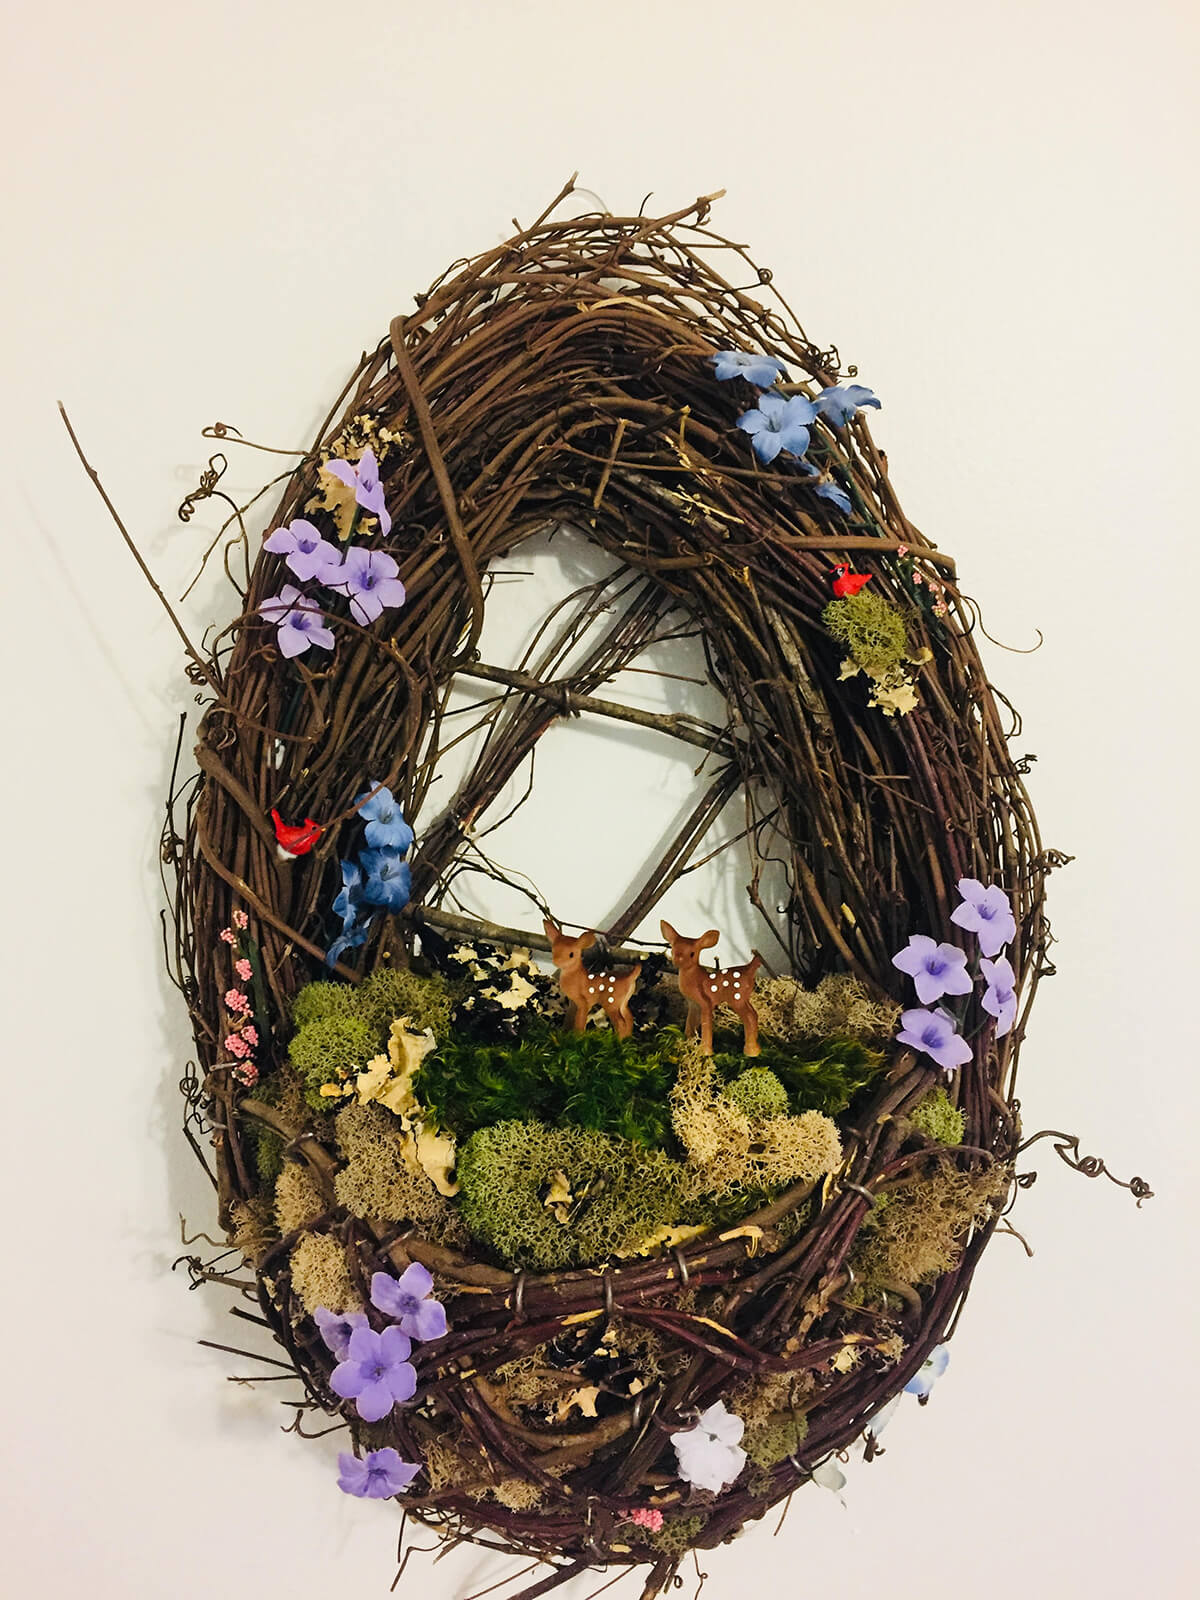 Authentic Wreath with Flowers and Moss